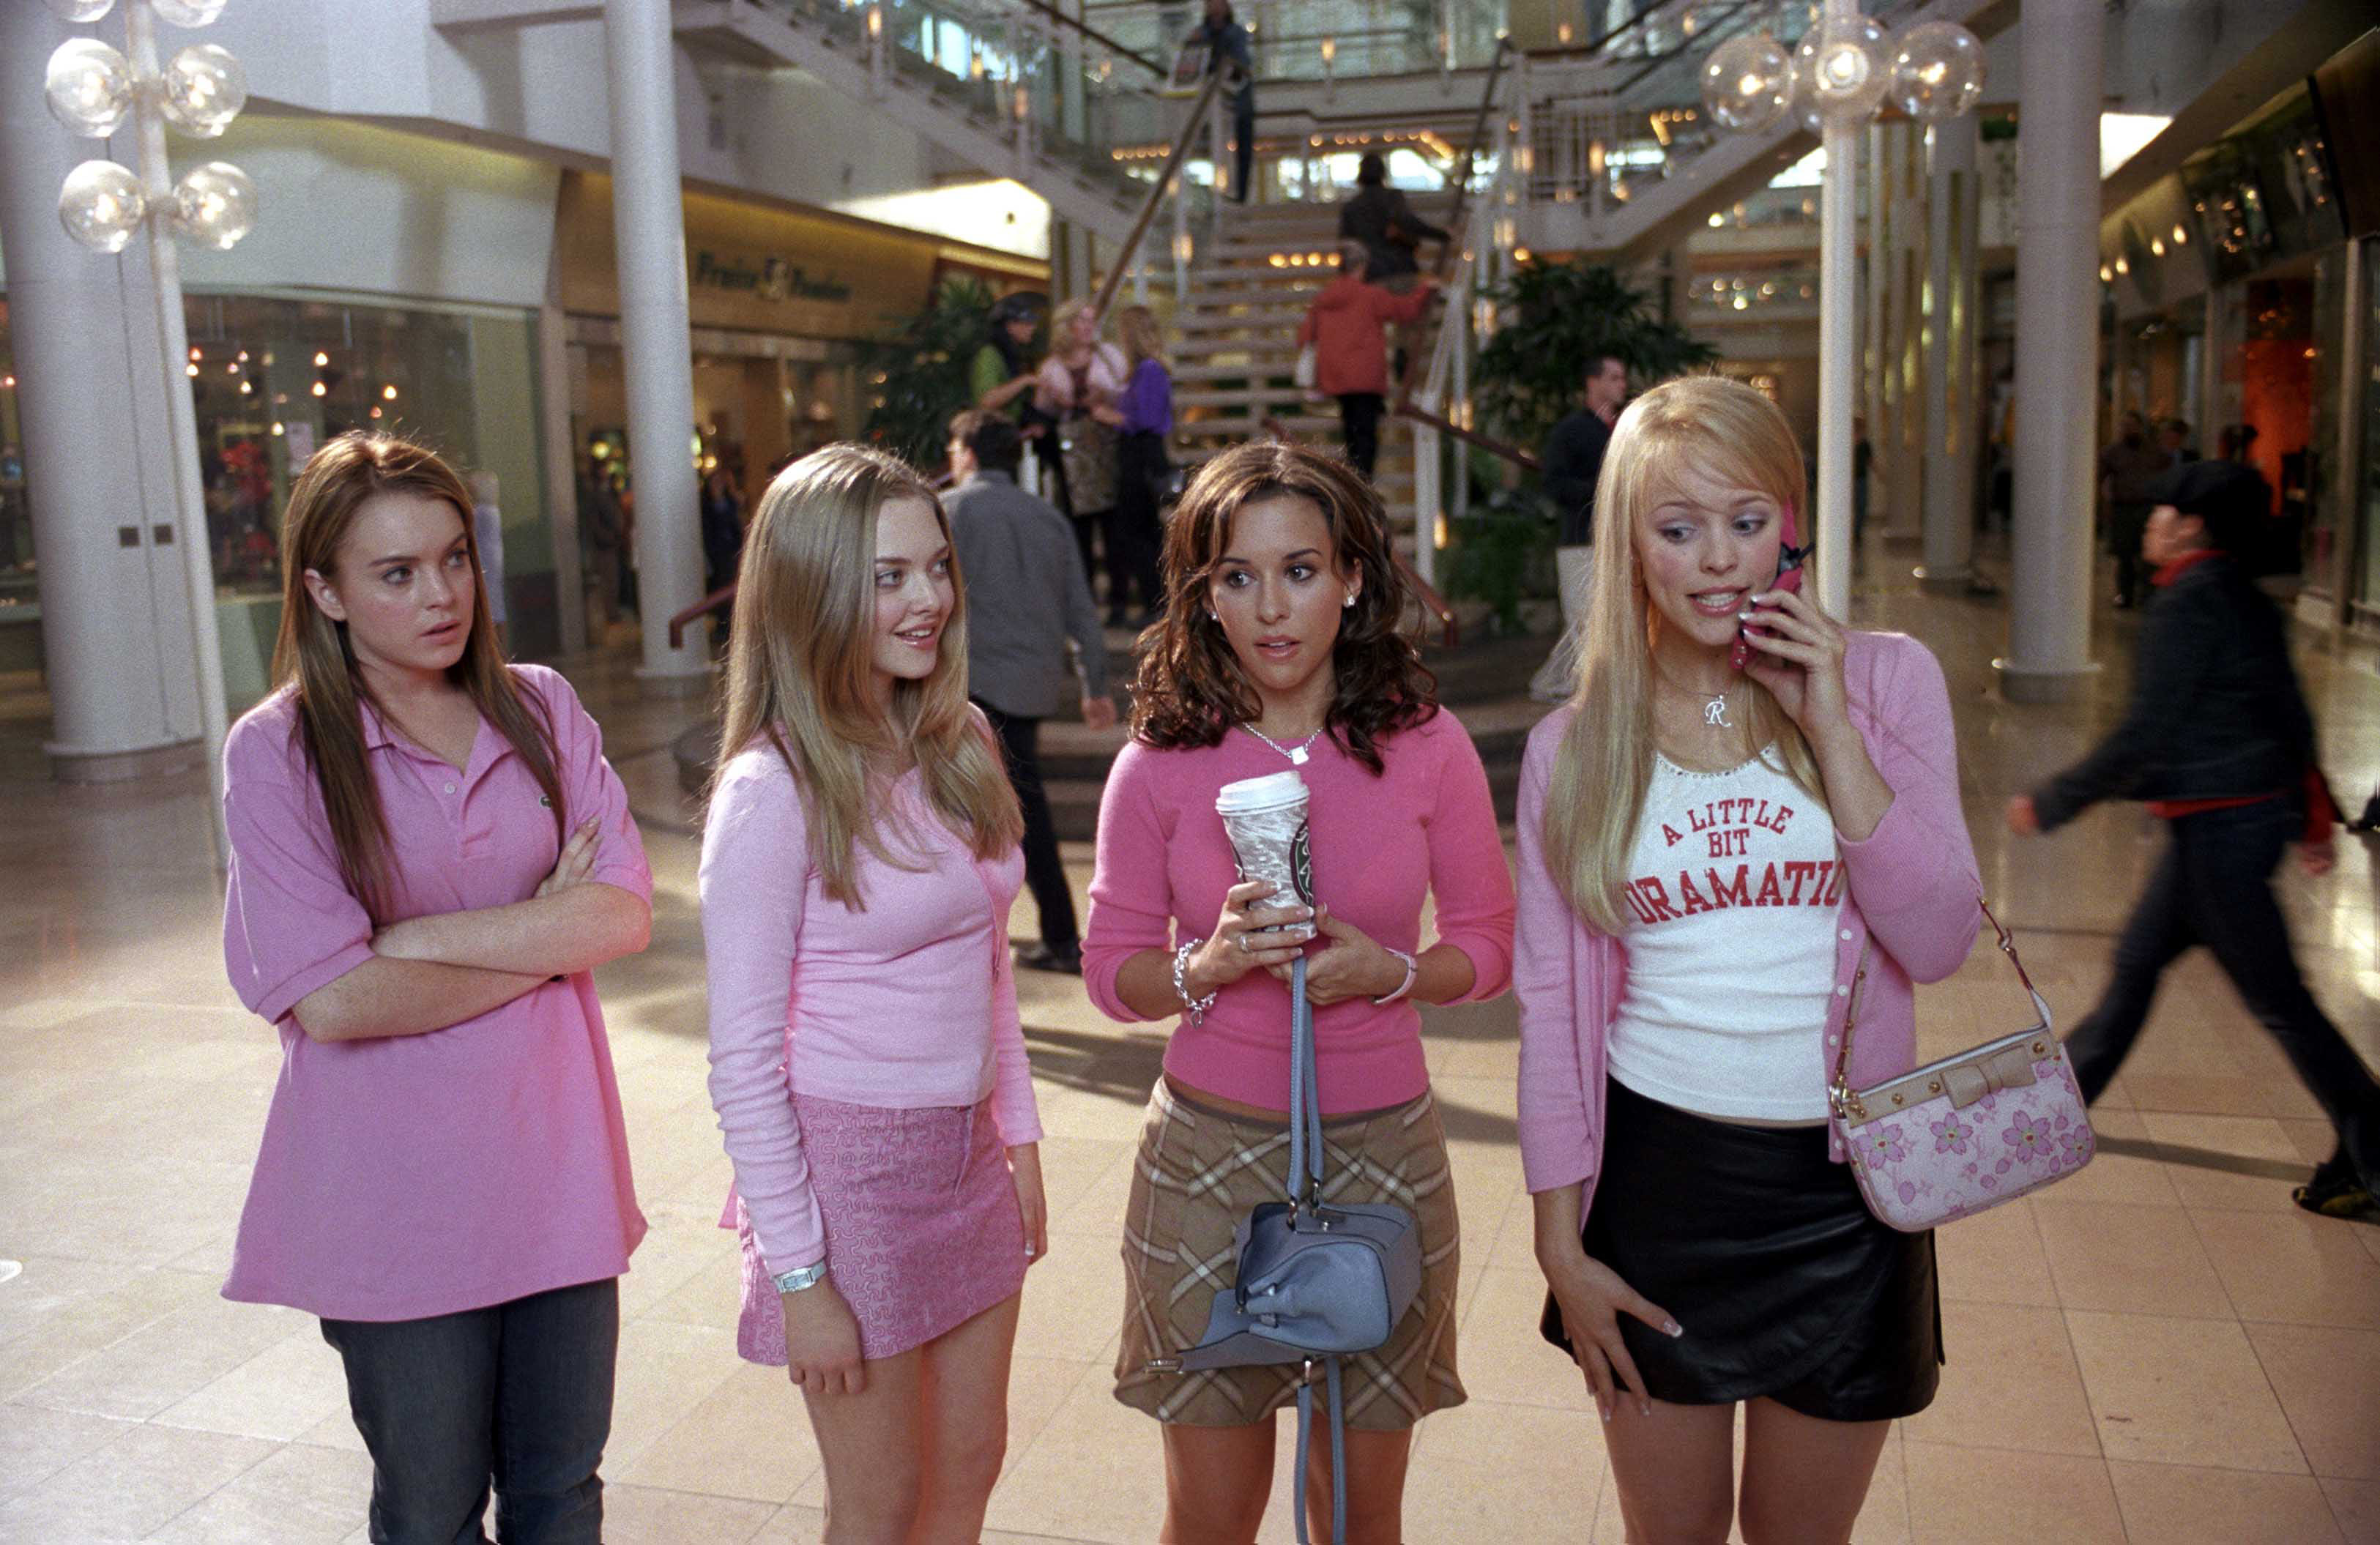 MEAN GIRLS (2004) LINDSAY LOHAN, AMANDA SEYFRIED, LACEY CHABERT, RACHEL MCADAMS